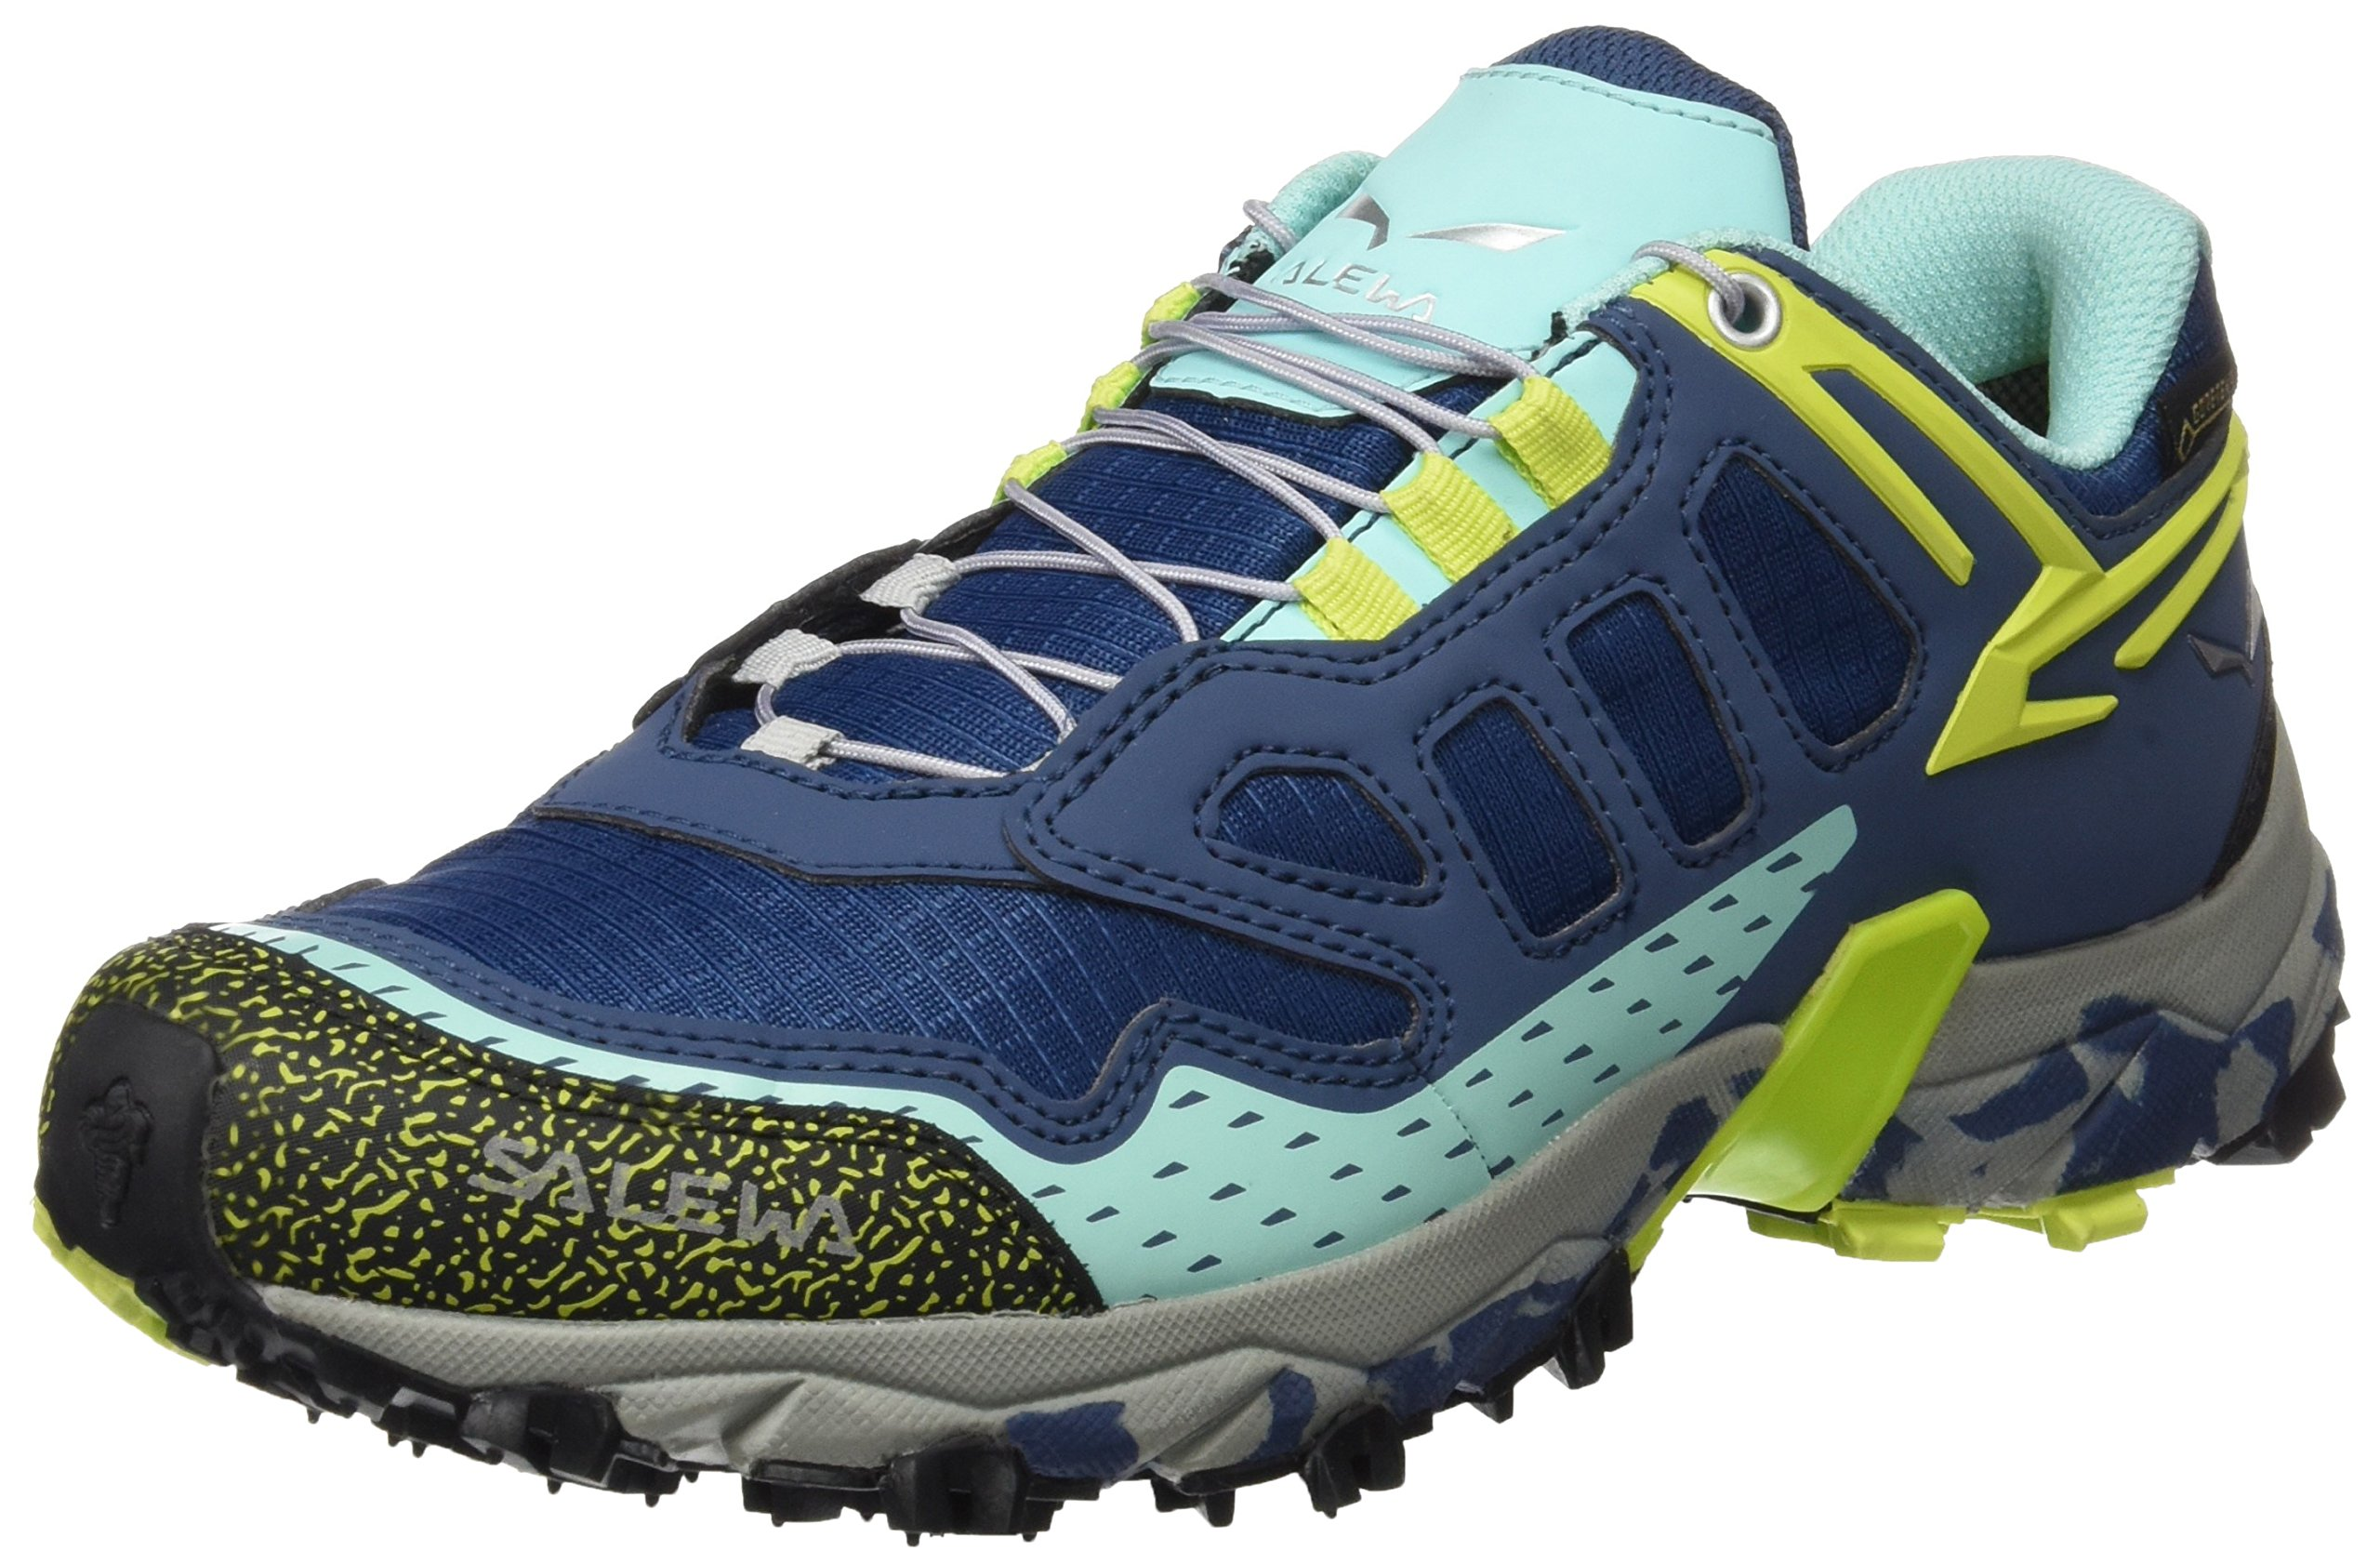 Salewa Women's Ultra Train GTX-W Trail Running Shoe, Dark Denim/Aruba Blue, 9 B(M) US